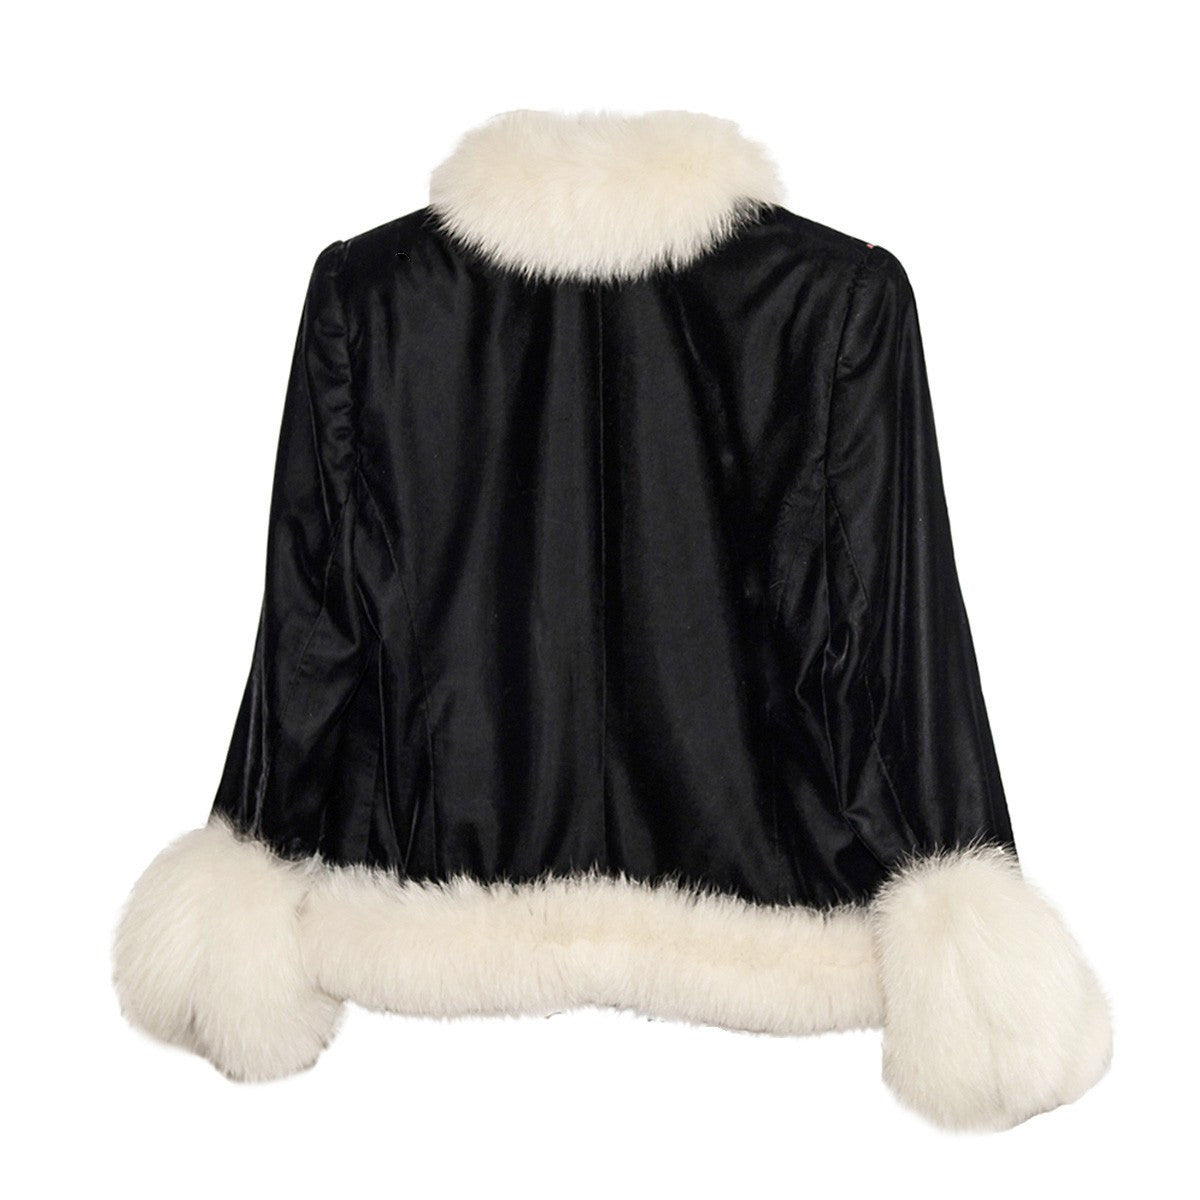 White Faux Fur & Embroidered Après-ski Jacket 2, Black Velveteen, Made in France